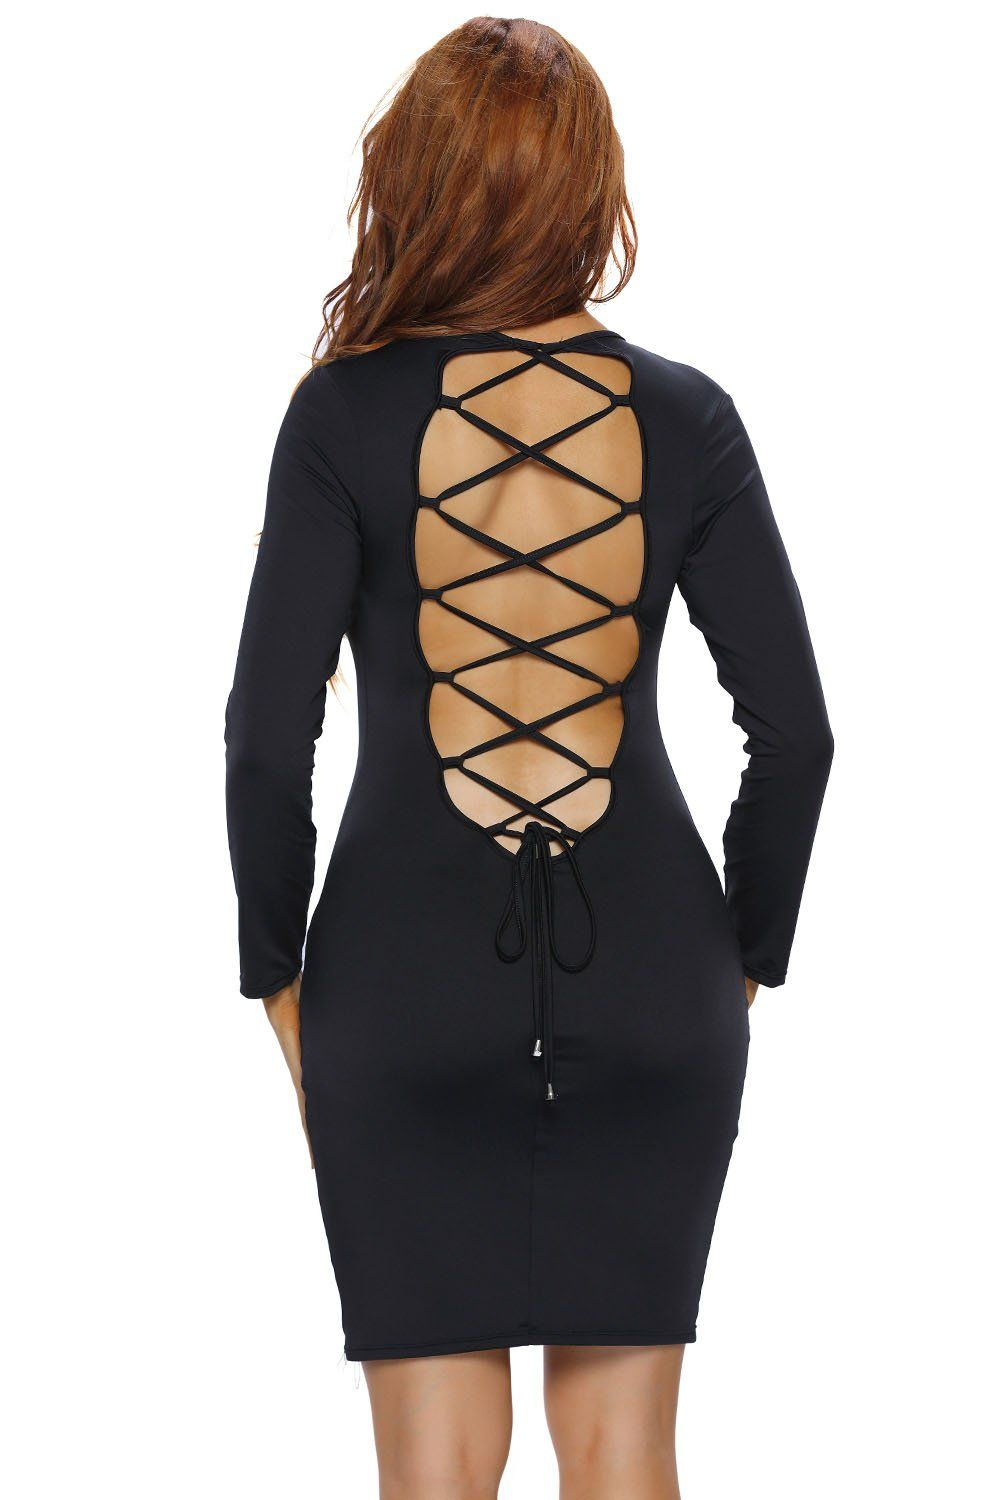 Mrs spicy colors lace up back long sleeve bodycon mini dress black